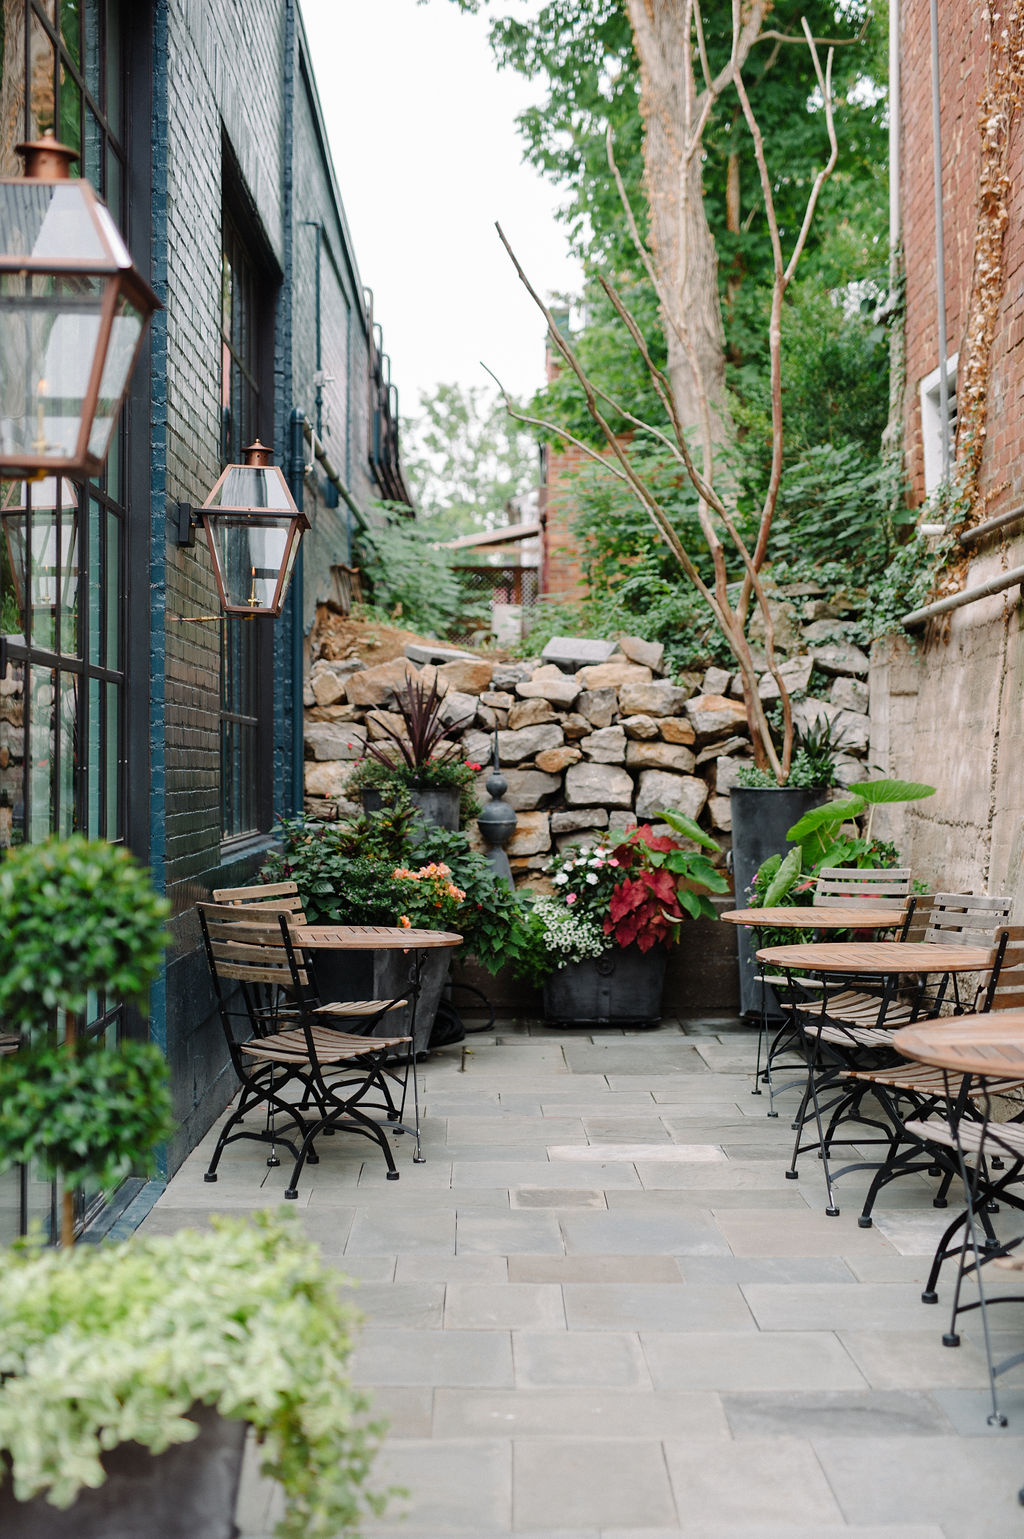 An outdoor patio space with wood and iron tables and chairs that is attached to The Patton Room